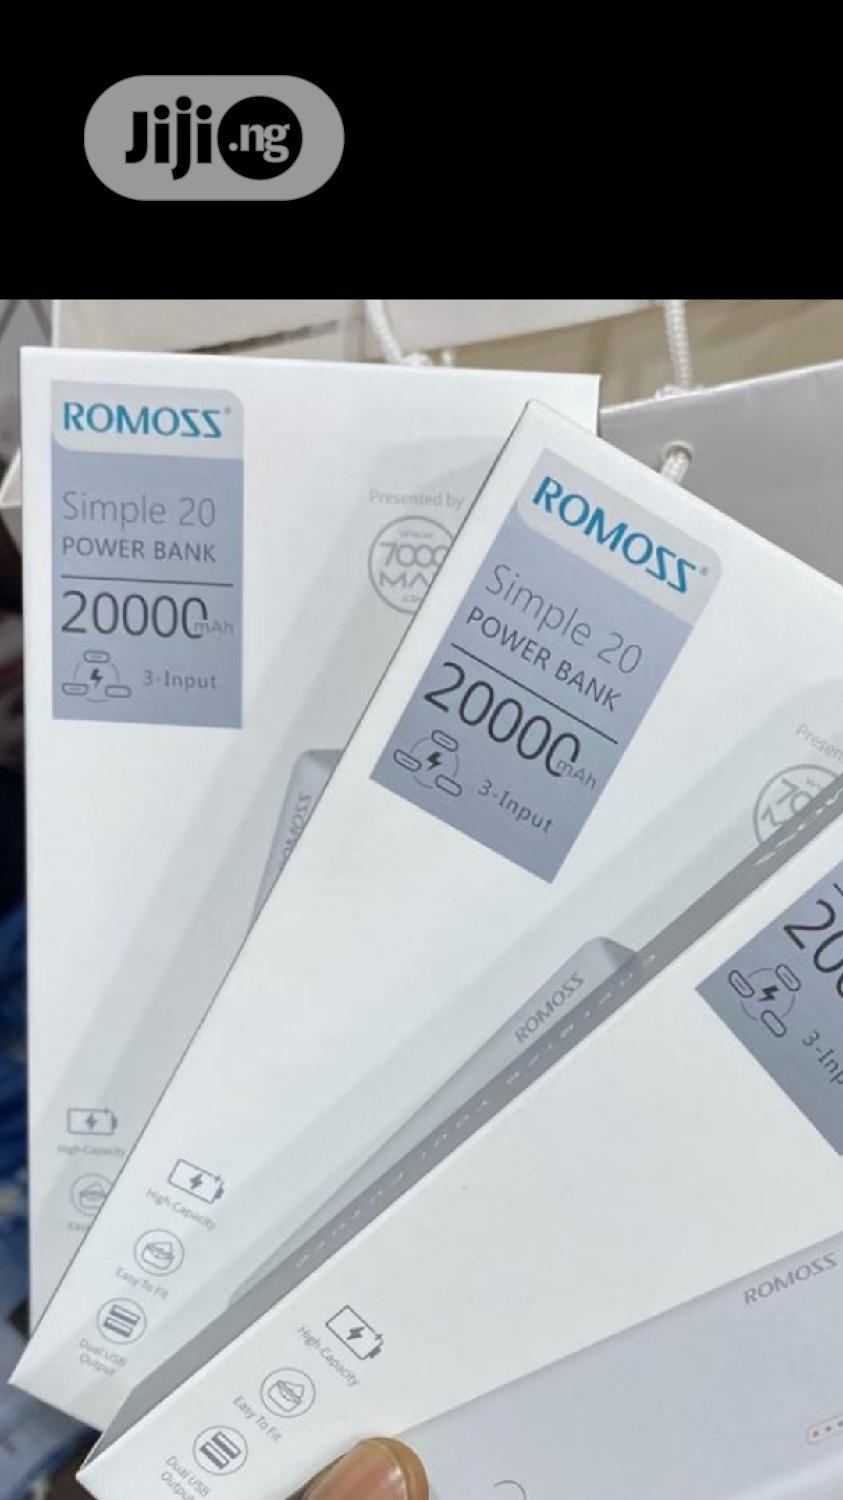 Romoss Power Bank 200000mah   Accessories for Mobile Phones & Tablets for sale in Ikeja, Lagos State, Nigeria